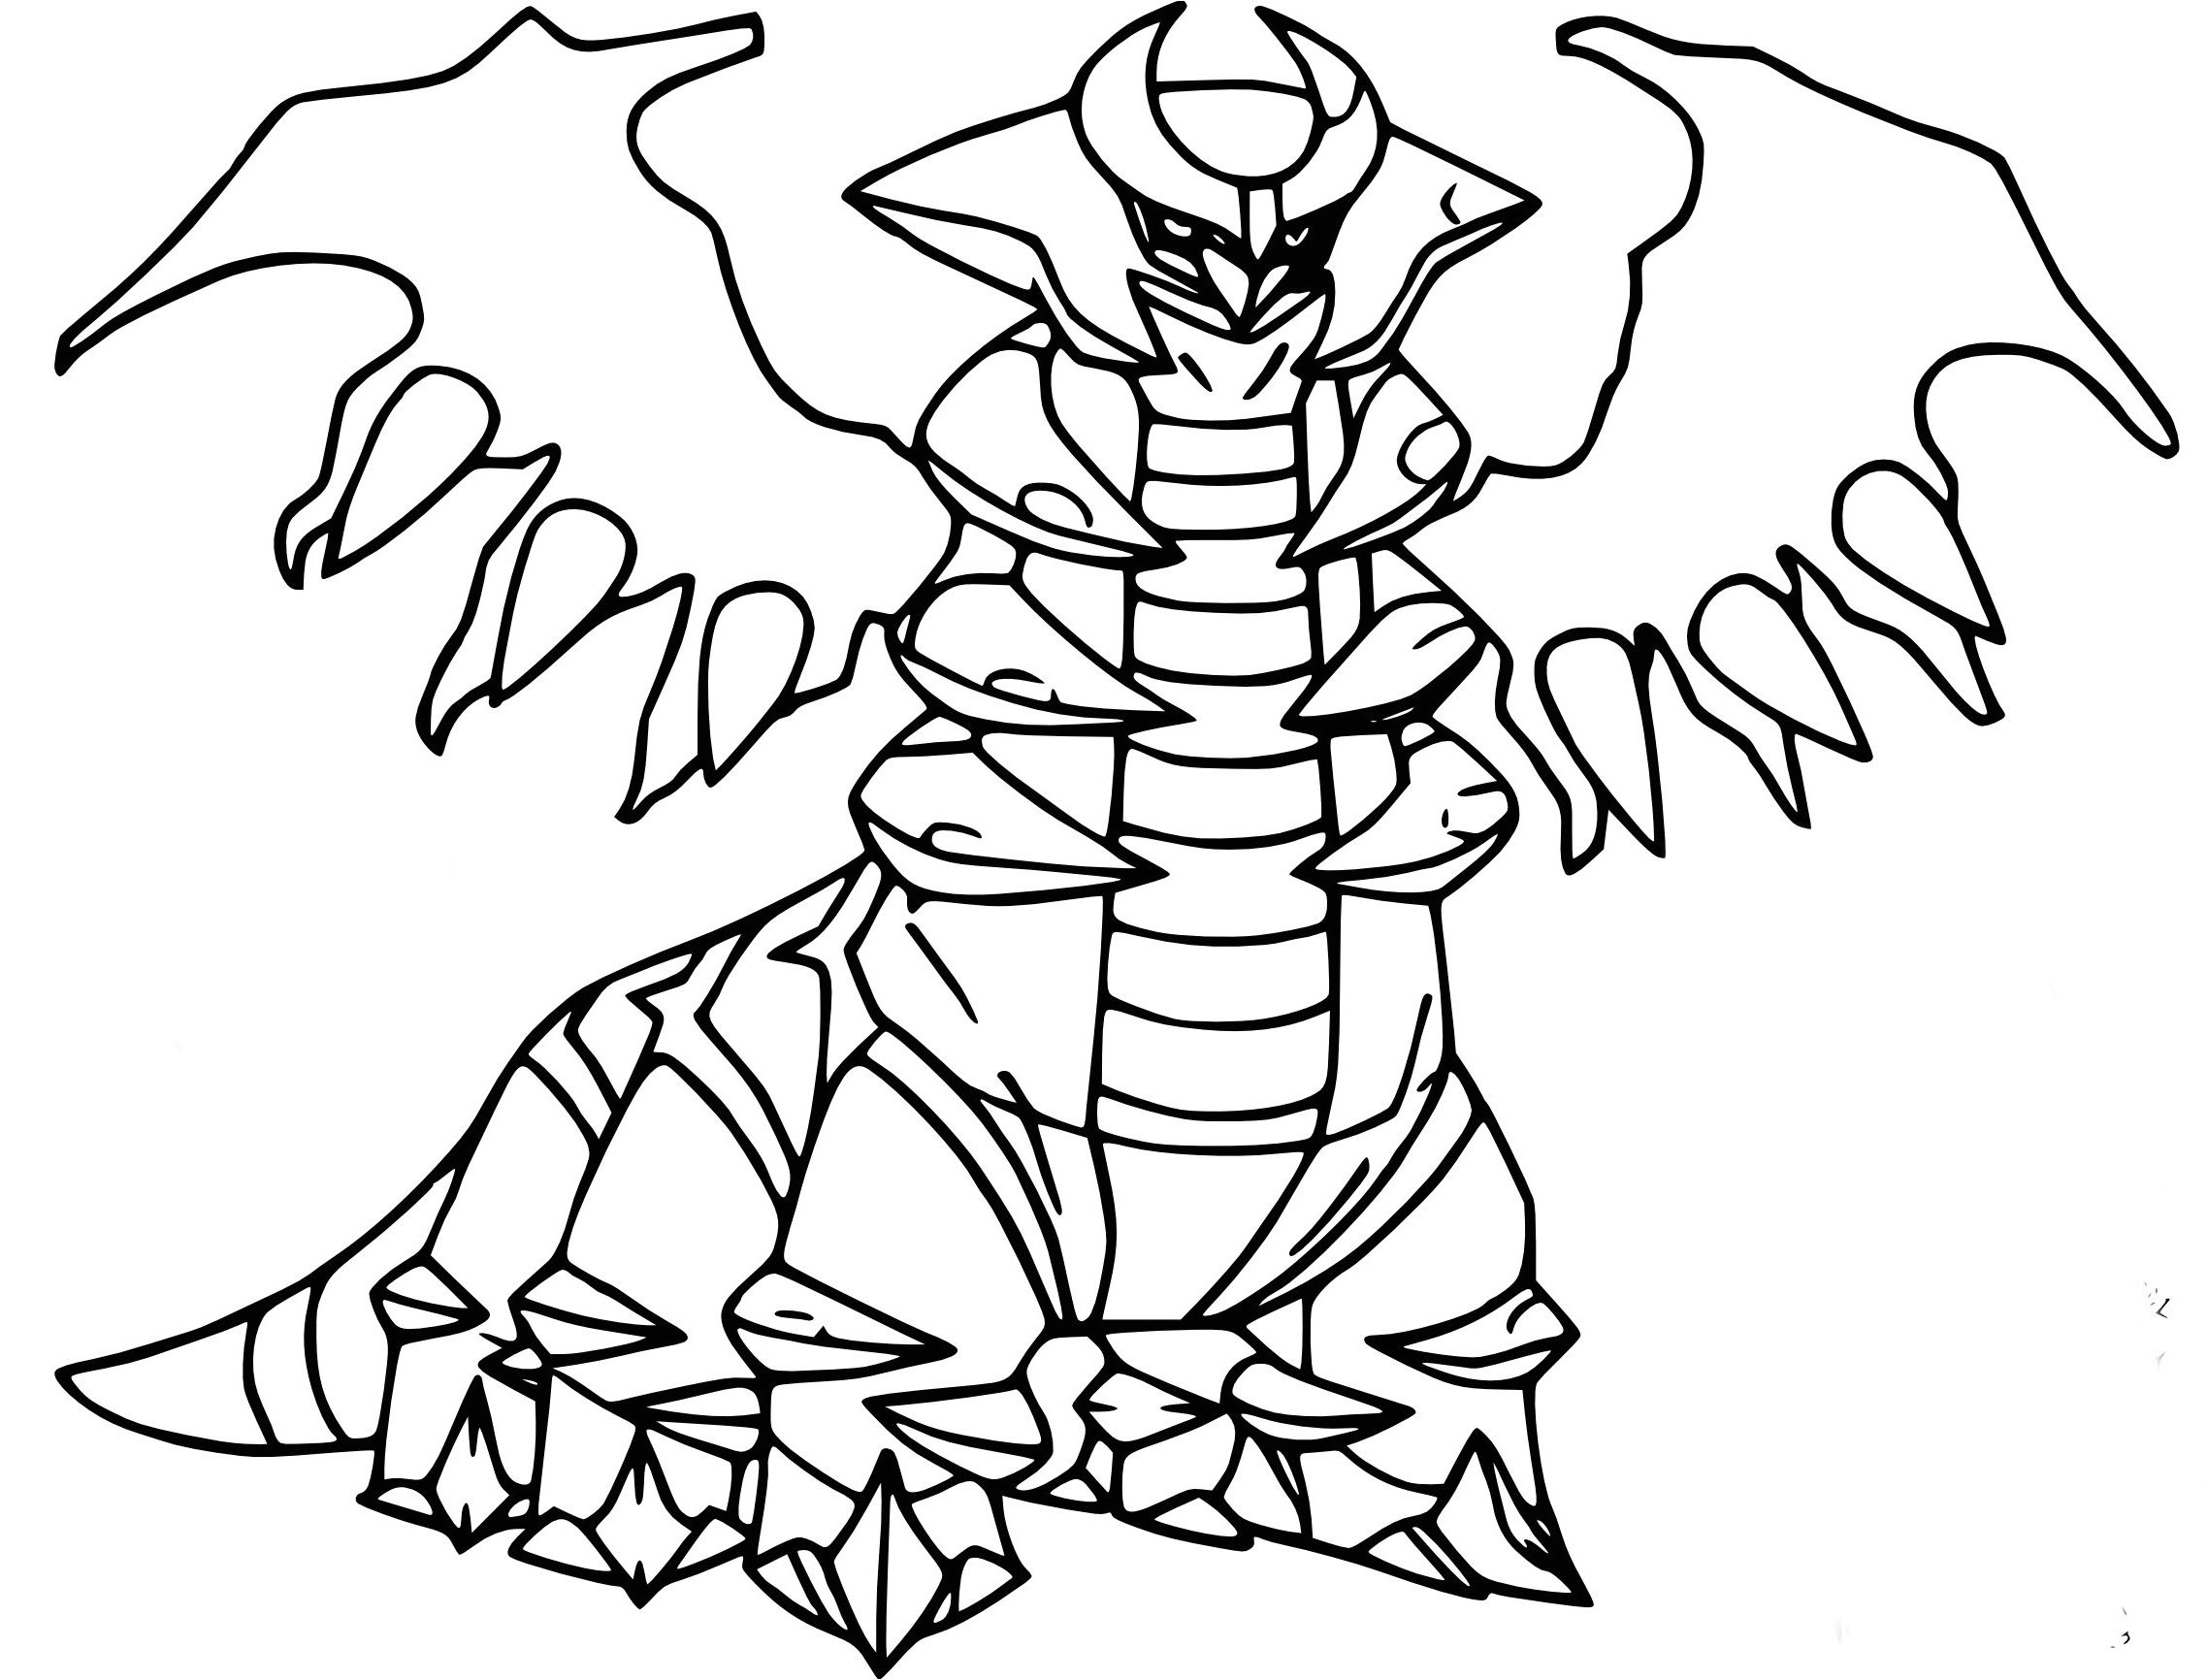 Coloriage De Pokemon Rare Coloriagesde In 2020 Pokemon Coloring